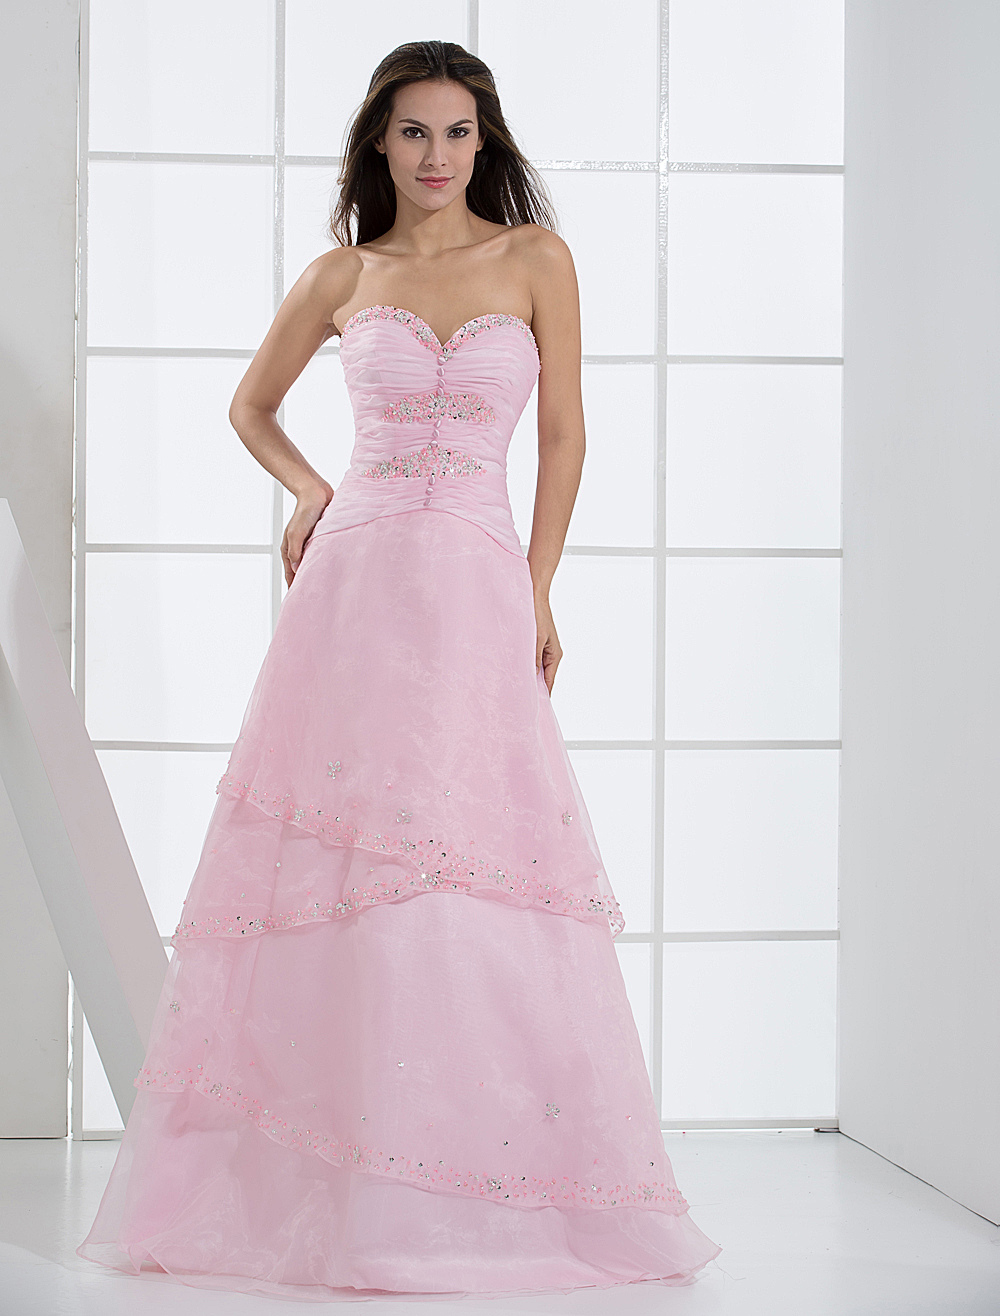 Pink Strapless Satin Organza Prom Dress/Homecoming Dress